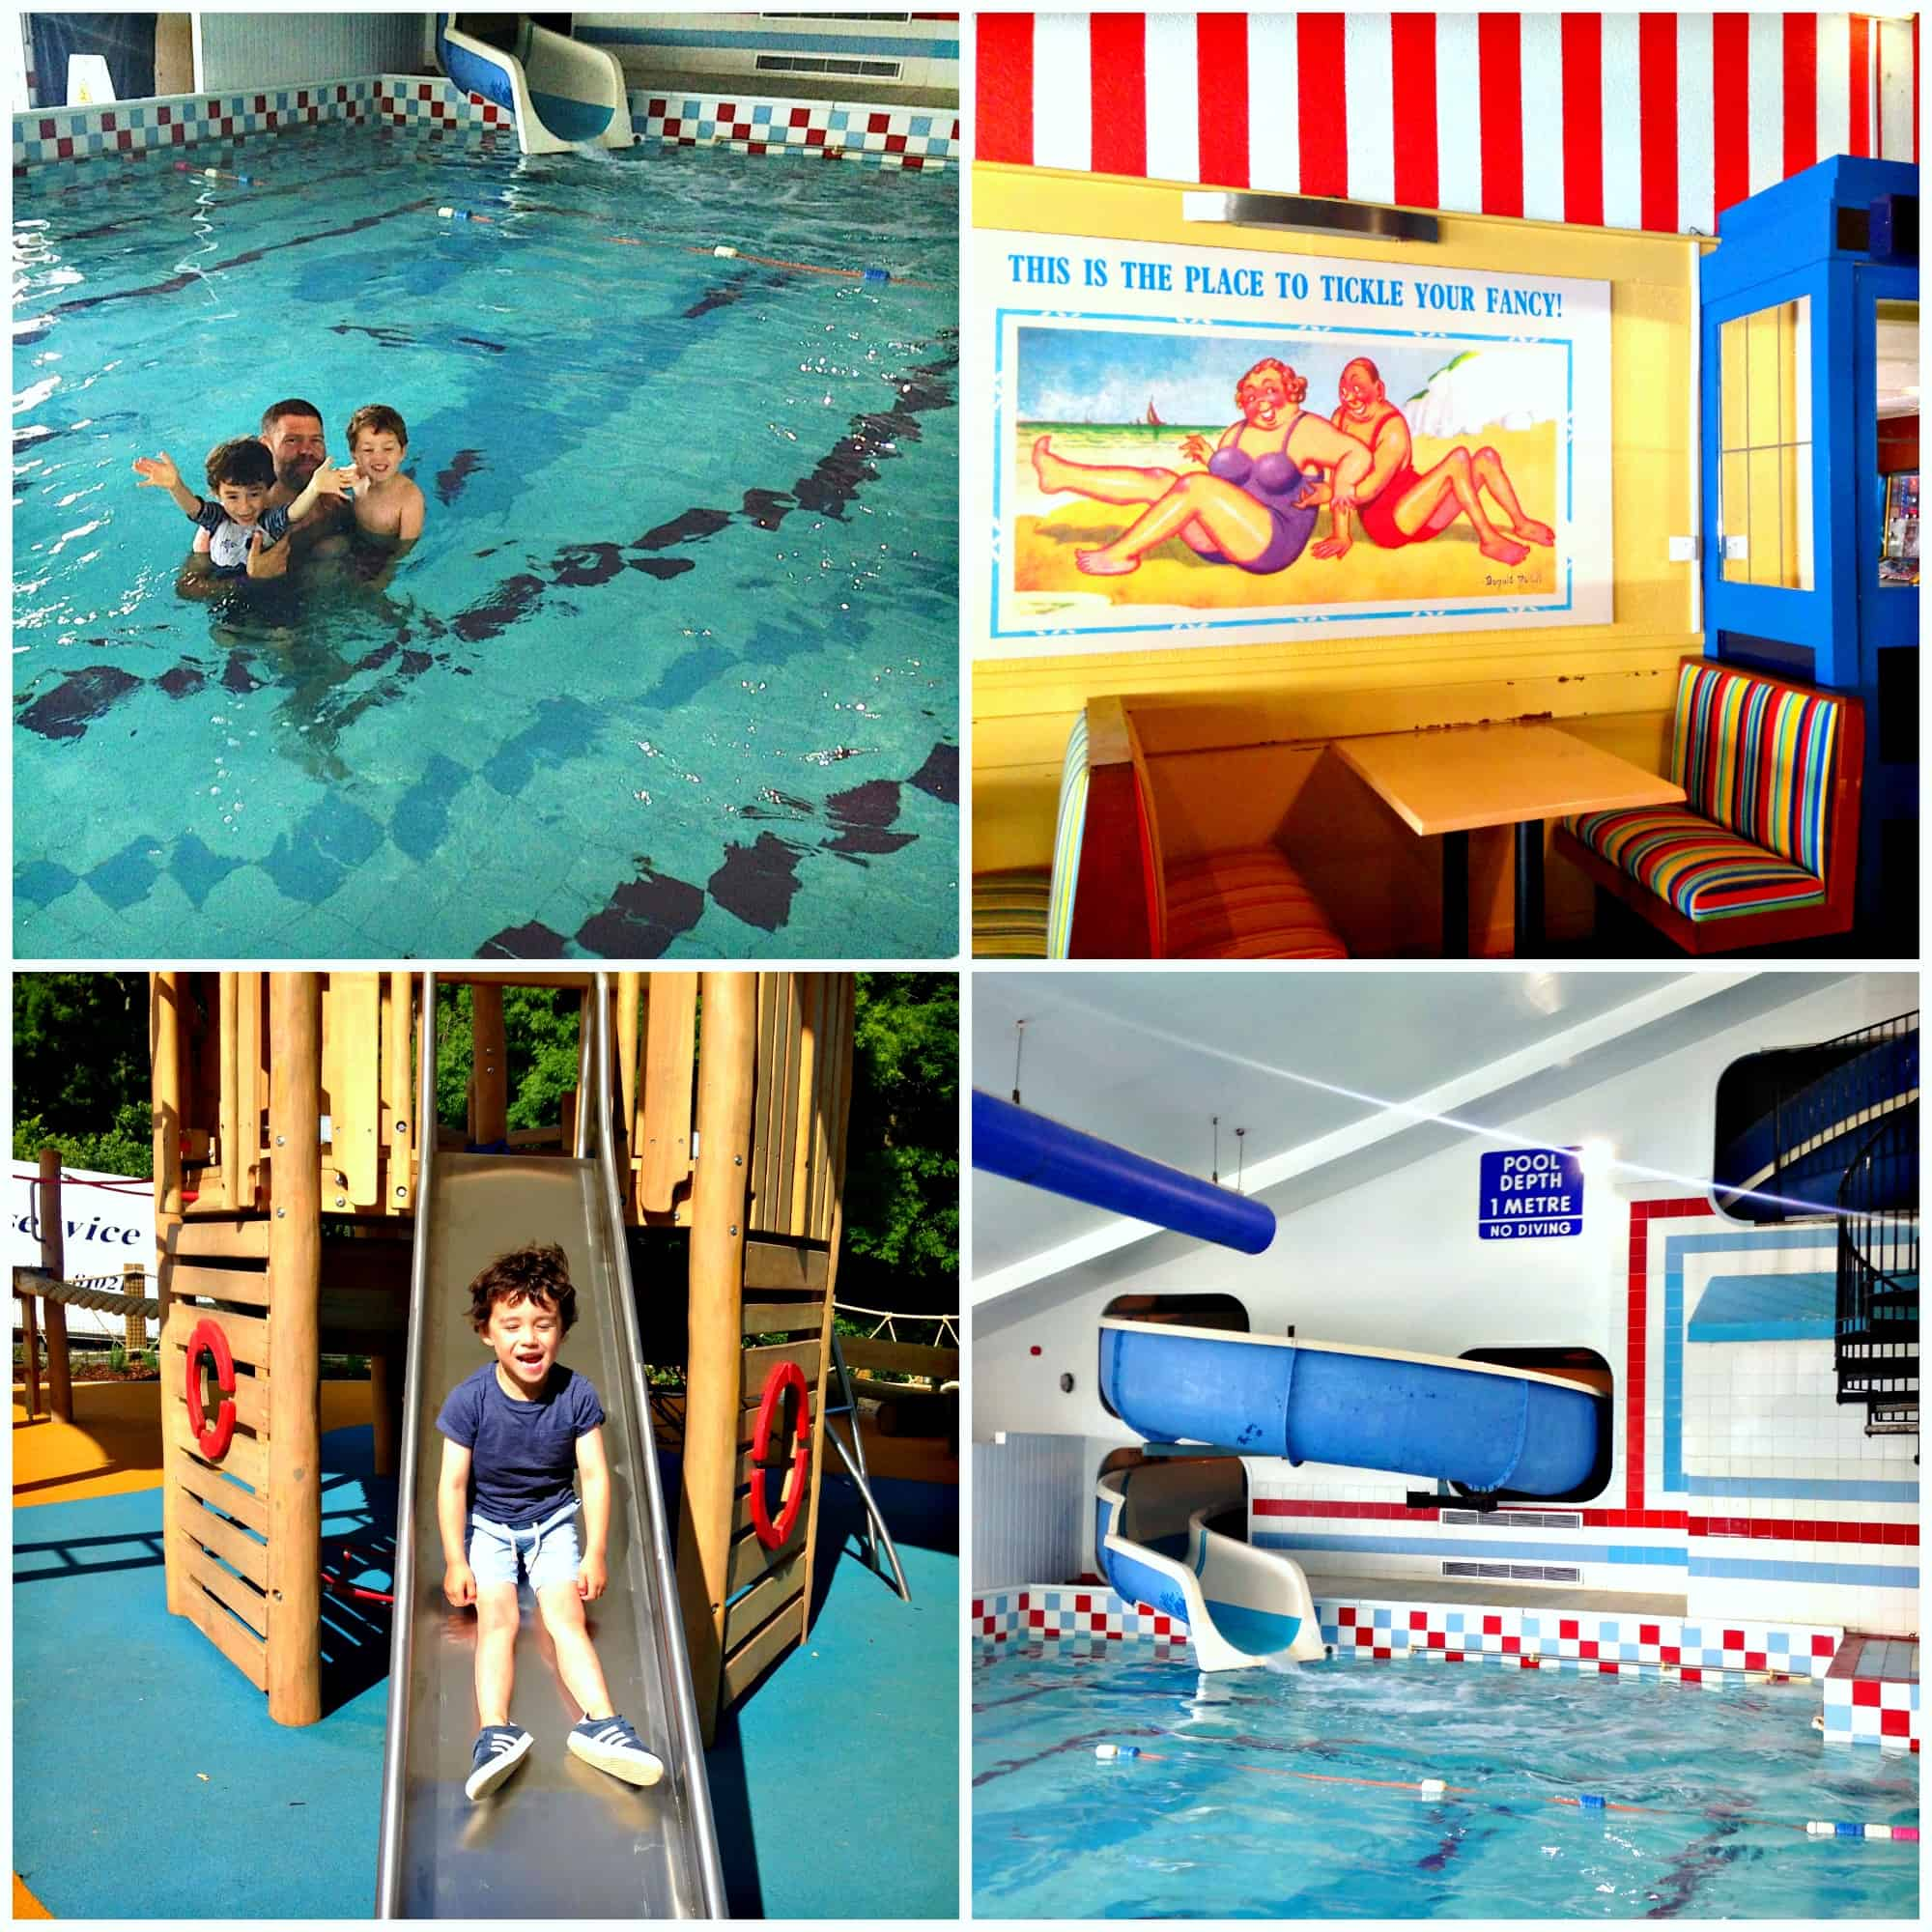 Whitecliff Bay Holiday Parks For Families, Isle of Wight | My Travel Monkey